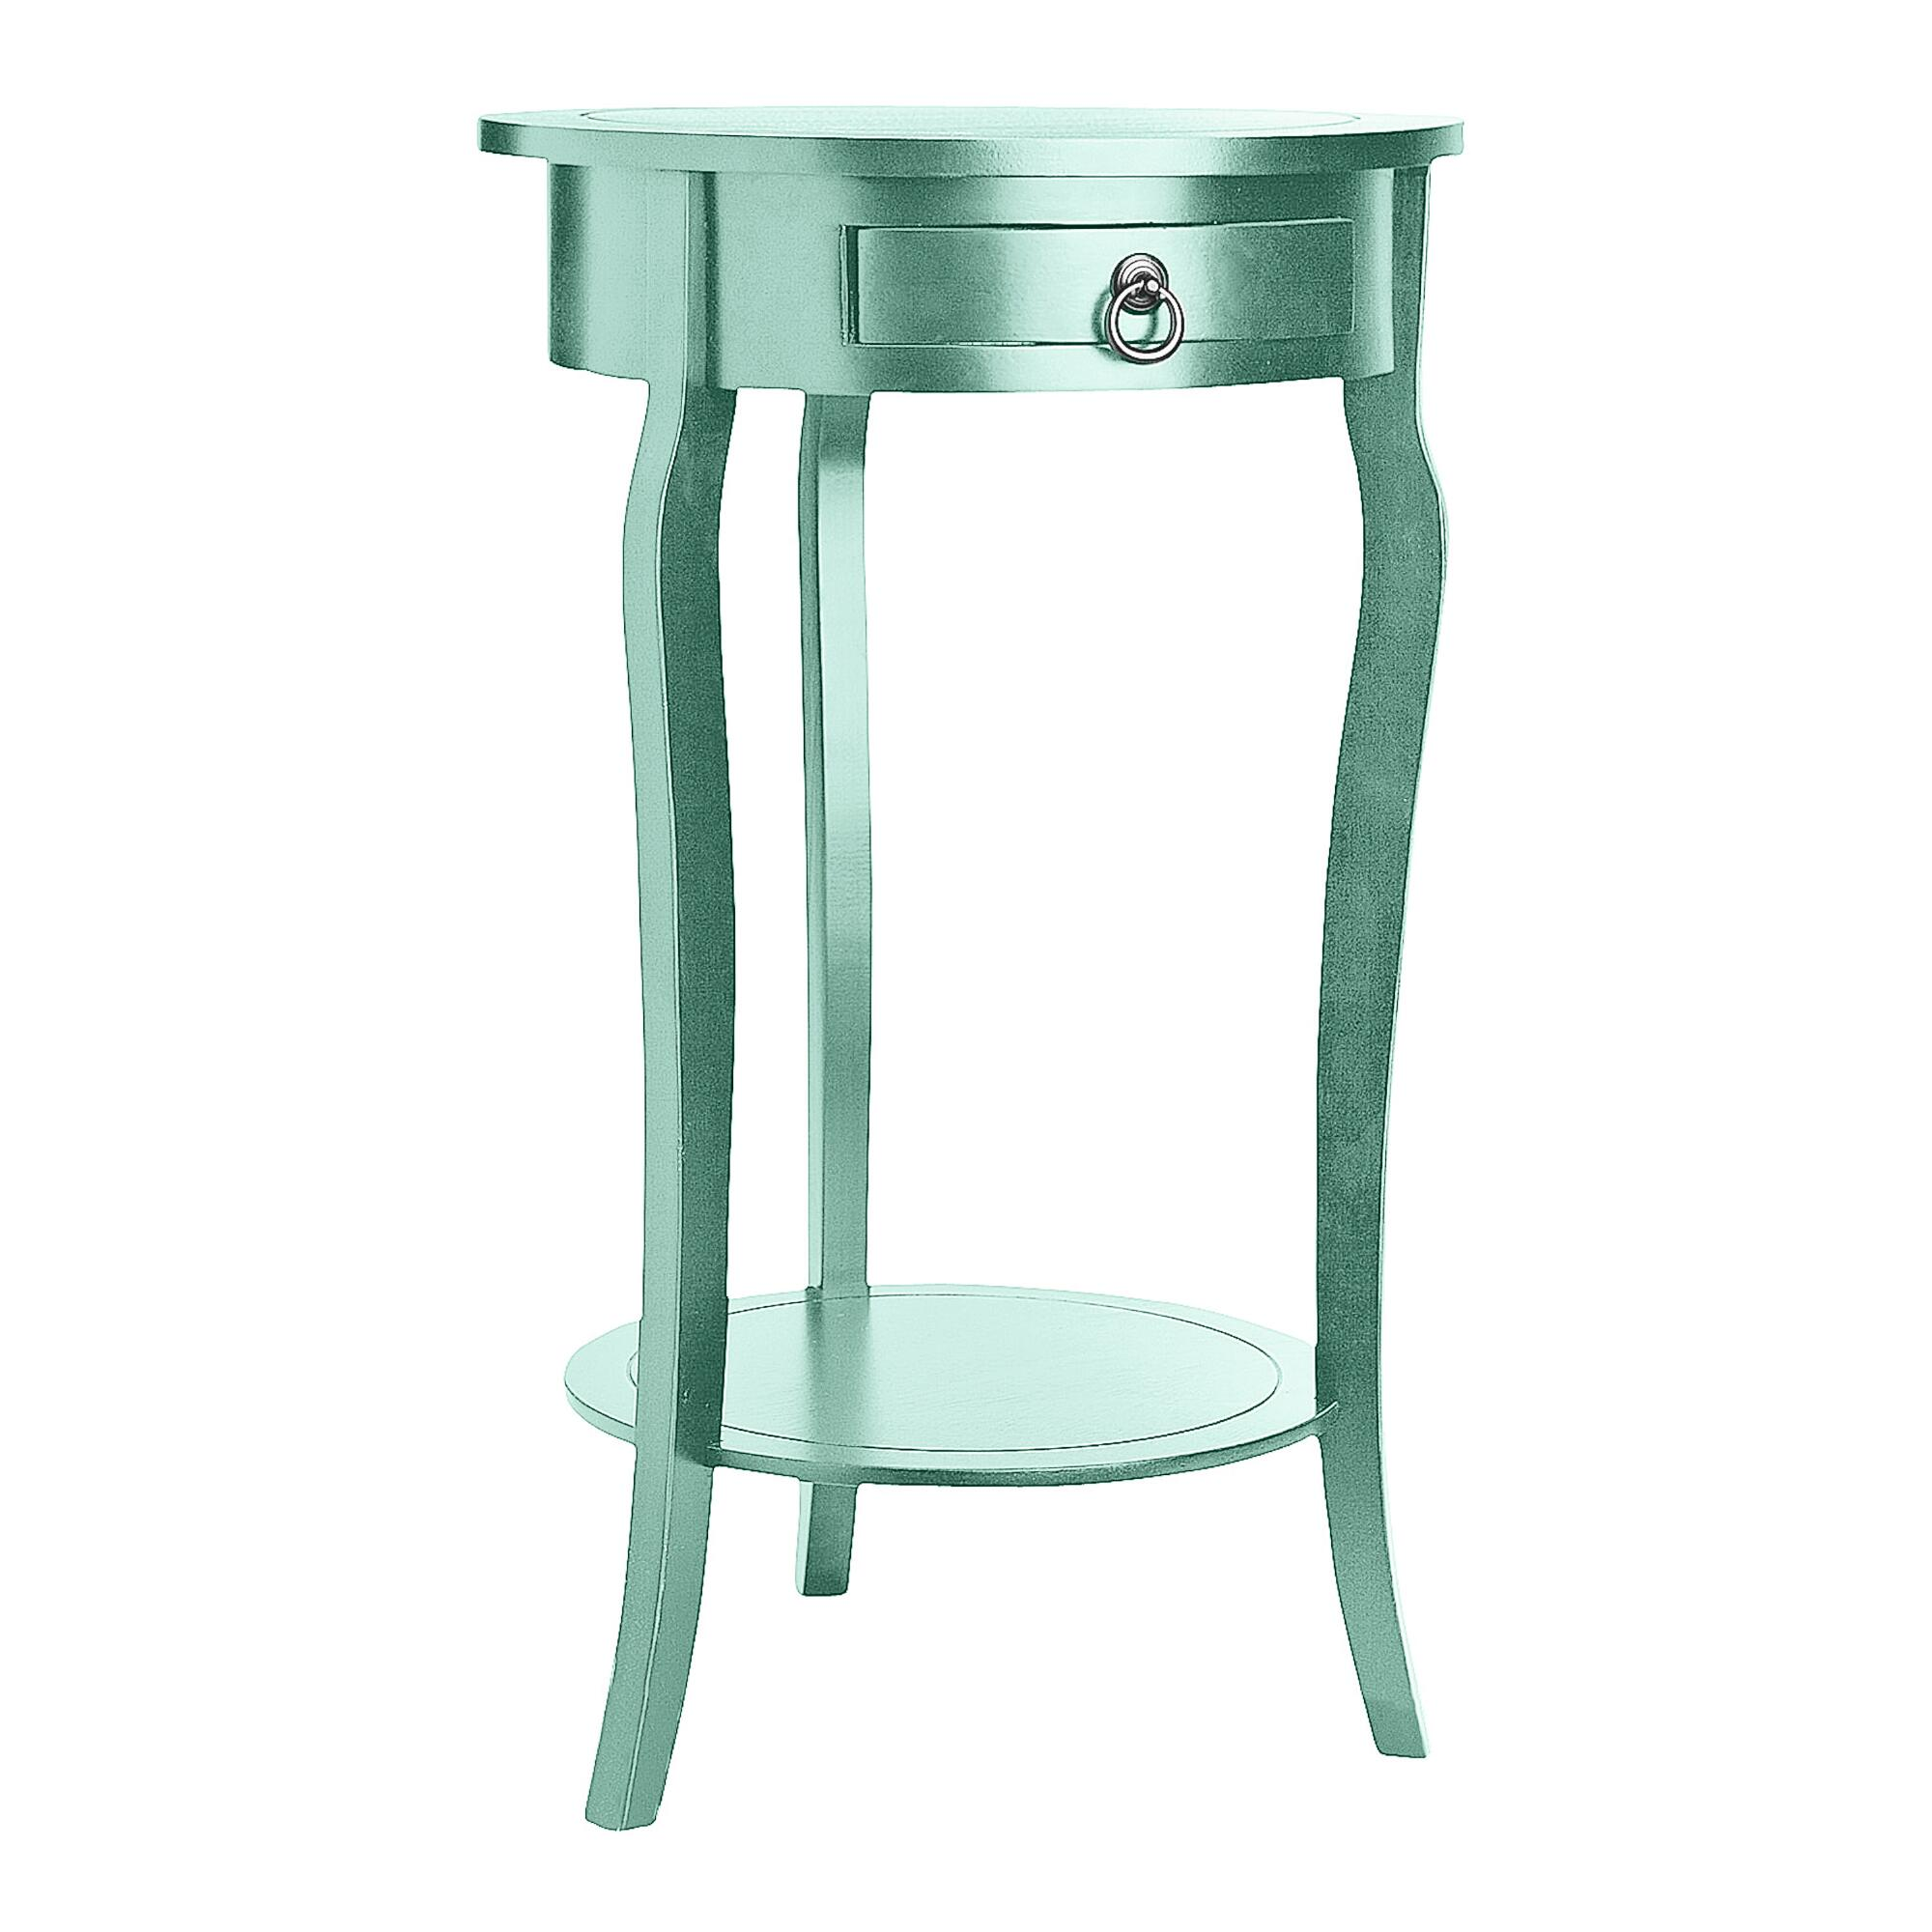 parsons side table navy blue bungalow wine rack accent tables with curvy legs interior decorating simplify pedestal rattan garden furniture covers rose gold target threshold patio